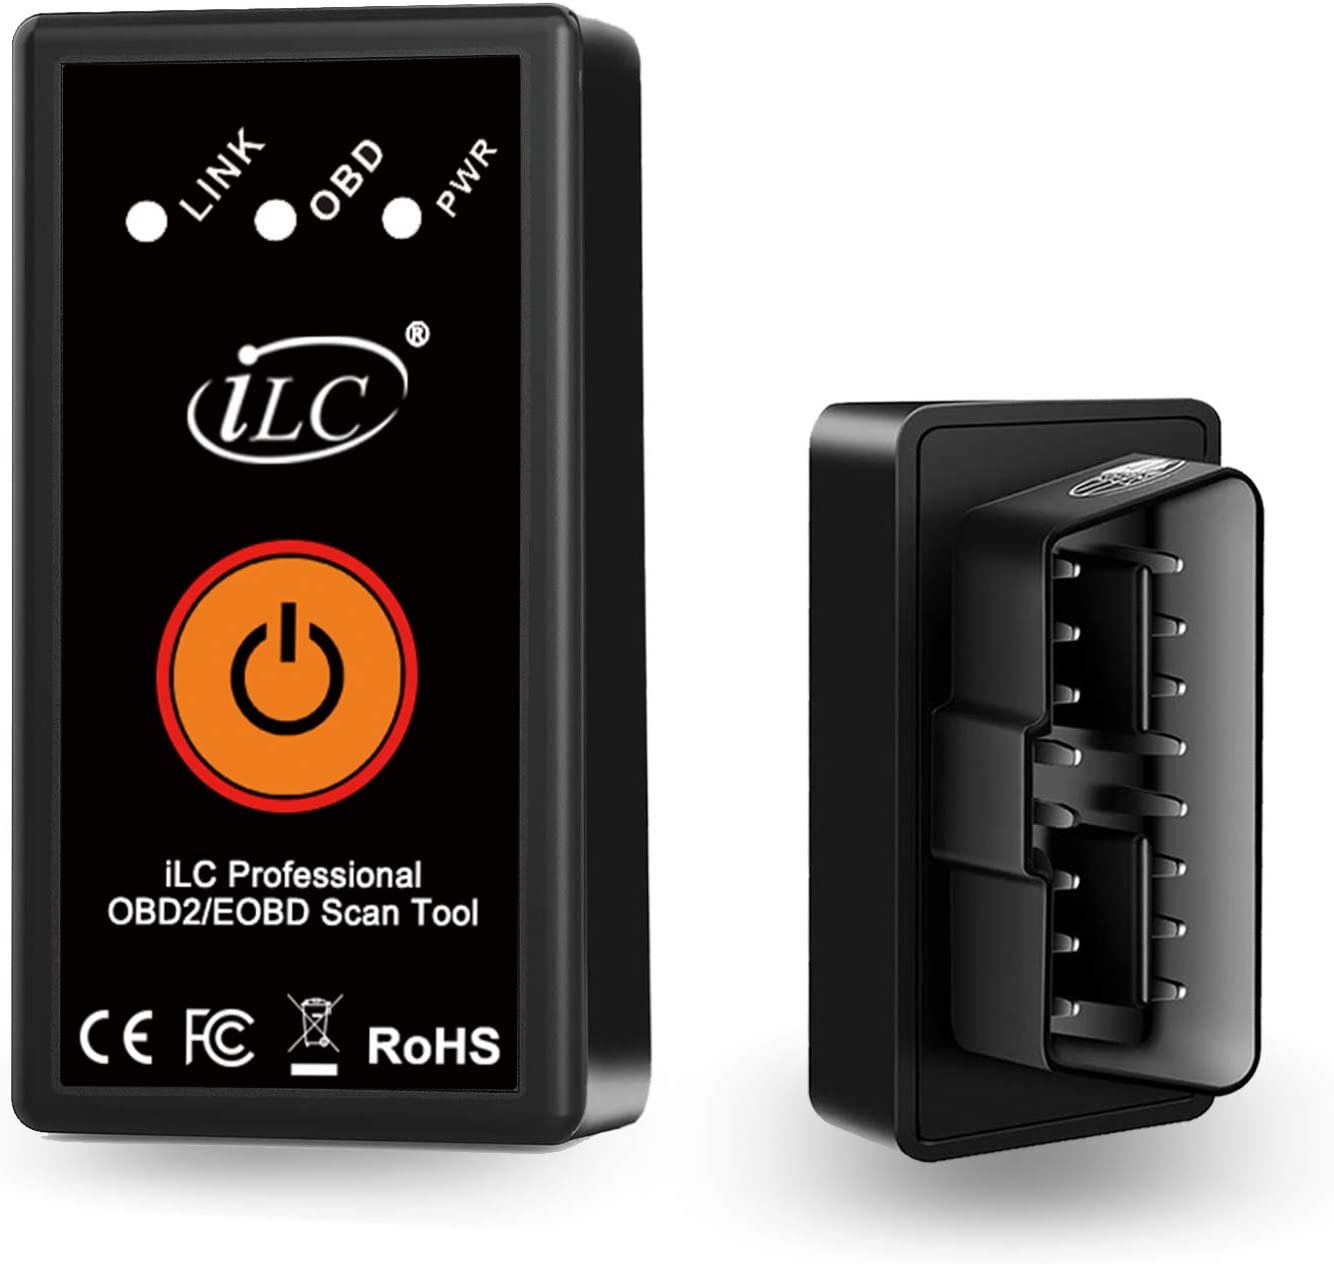 iLC OBD2 Bluetooth Coche Diagnóstico Escáner inalámbrico OBD2 Bluetooth Herramienta OBD Compatible con iPhone iOS, Android & Windows Dispositivo